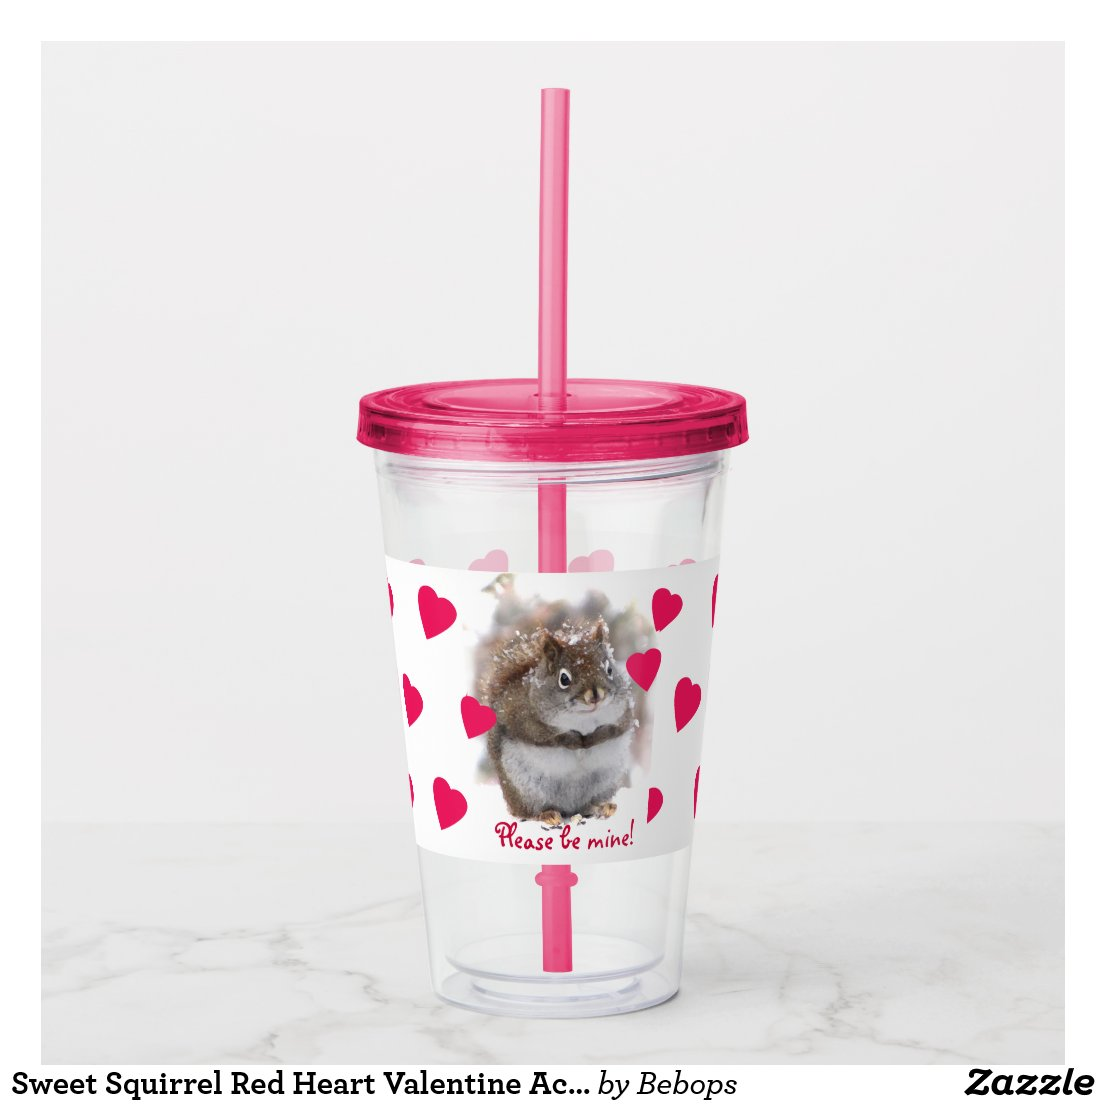 Sweet Squirrel Red Heart Valentine Acrylic Tumbler